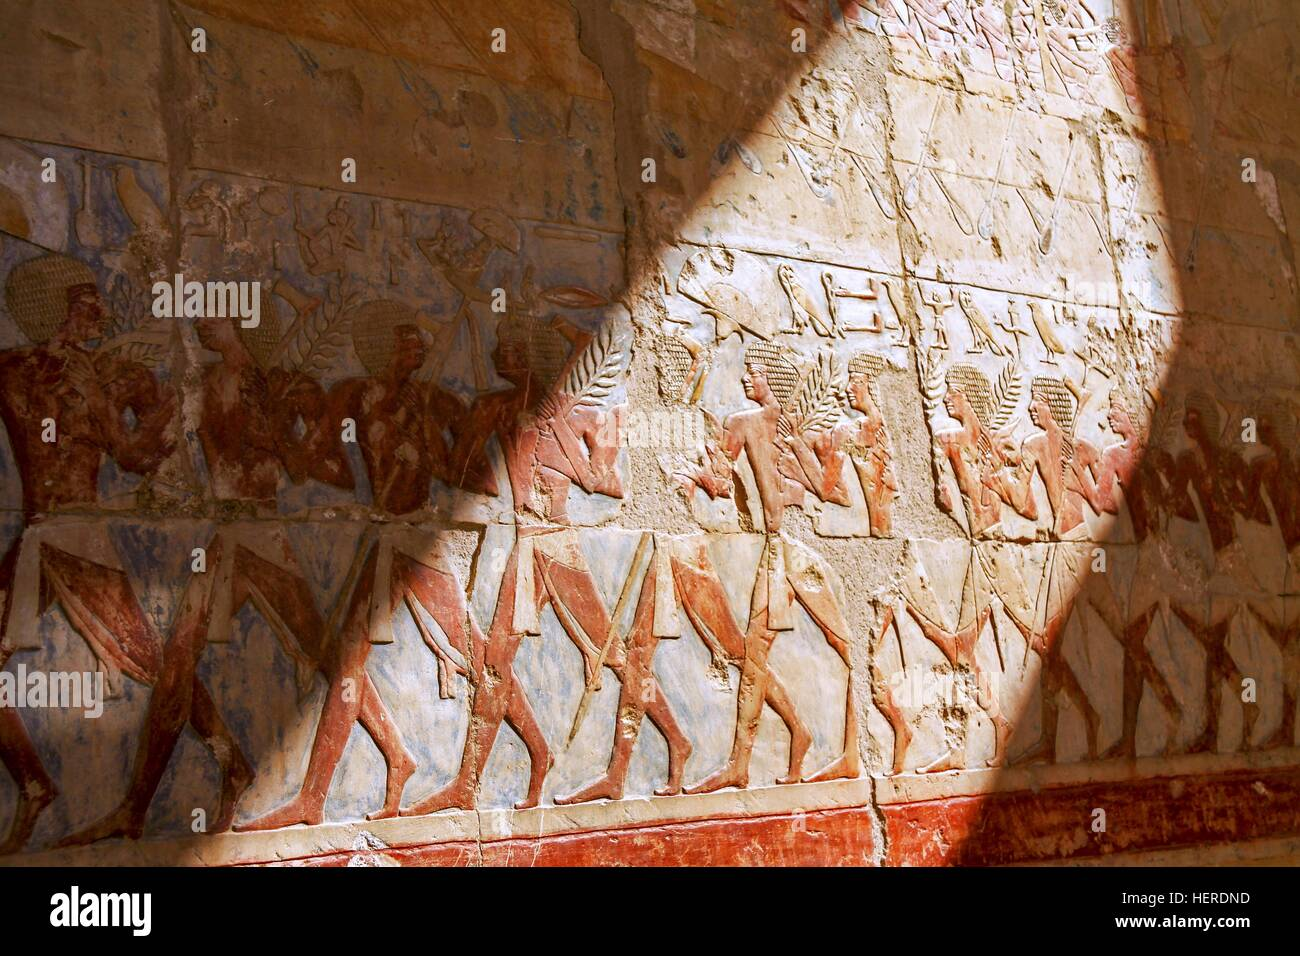 Ancient Egyptian Mural Paintings inside Queen Hatshepsut Temple in Valley of the Kings near Luxor, Egypt Stock Photo